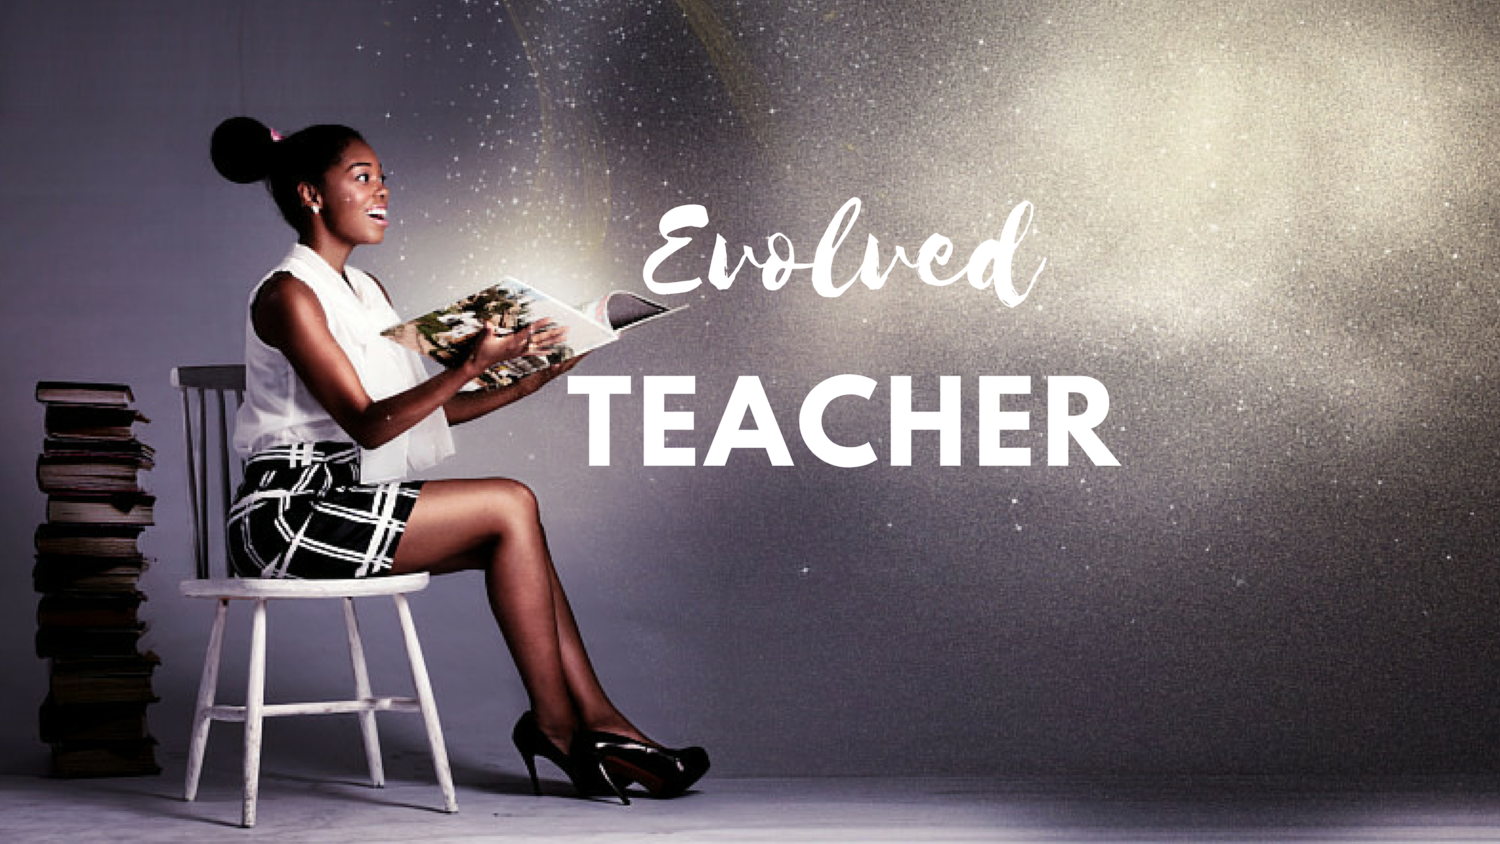 Evolved Teacher